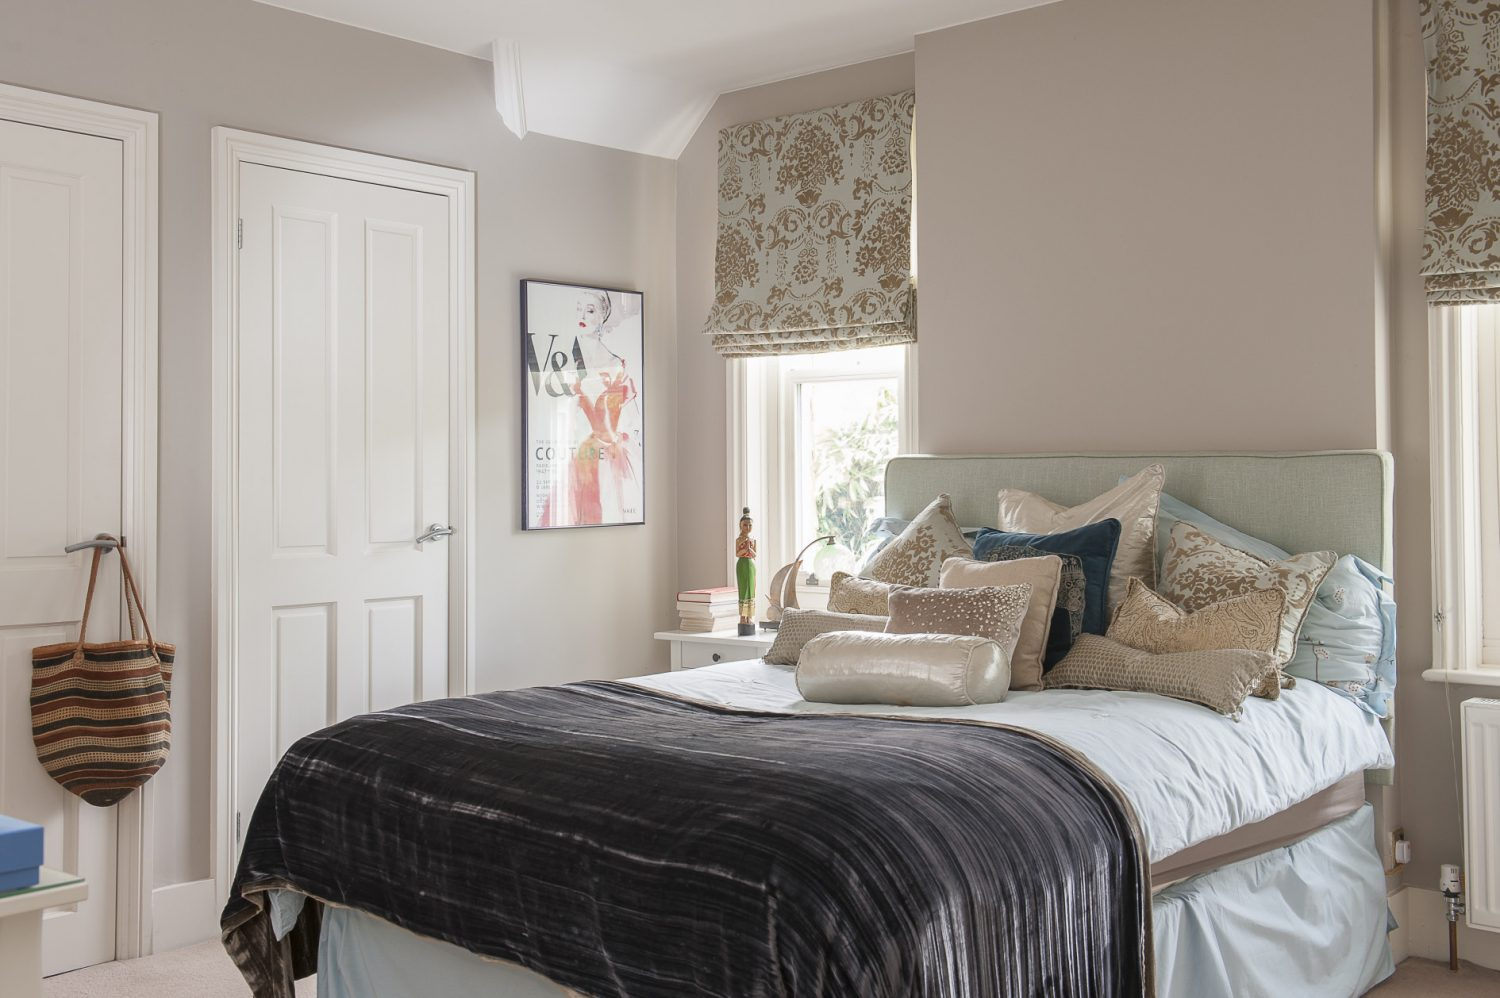 Daughter Emma fancied a touch of baroque in her bedroom, which Jane created by combining pale blue, rich browns and delicate golds in a range of texured fabrics for dressing the bed